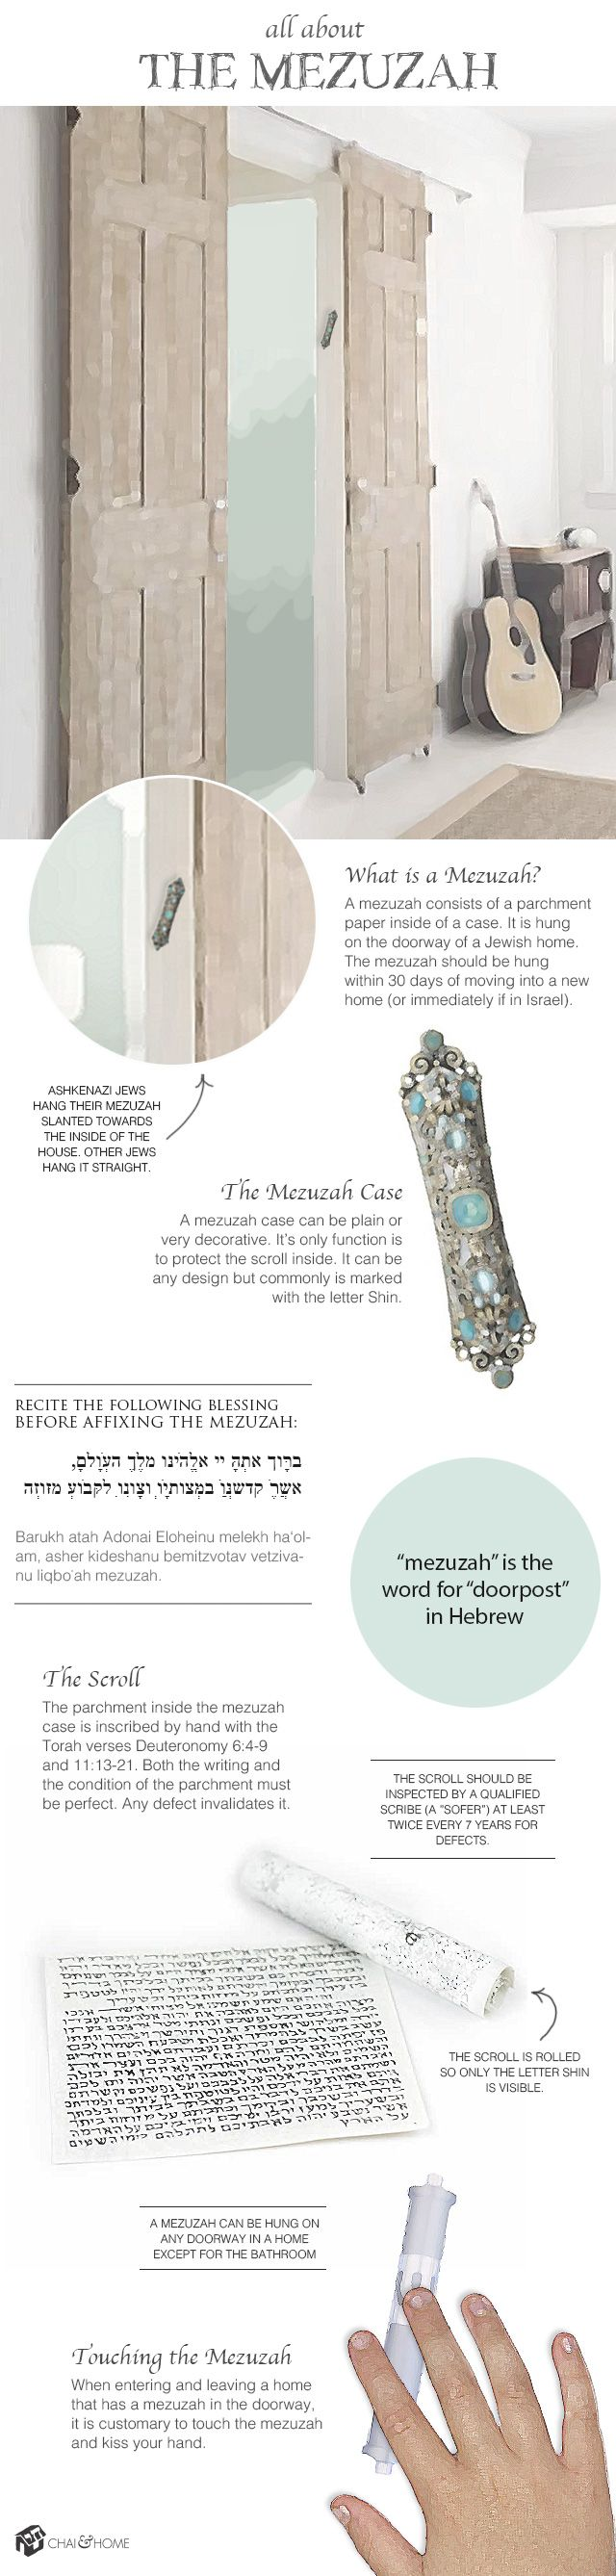 All About The Mezuzah: Infographic | Chai & Home